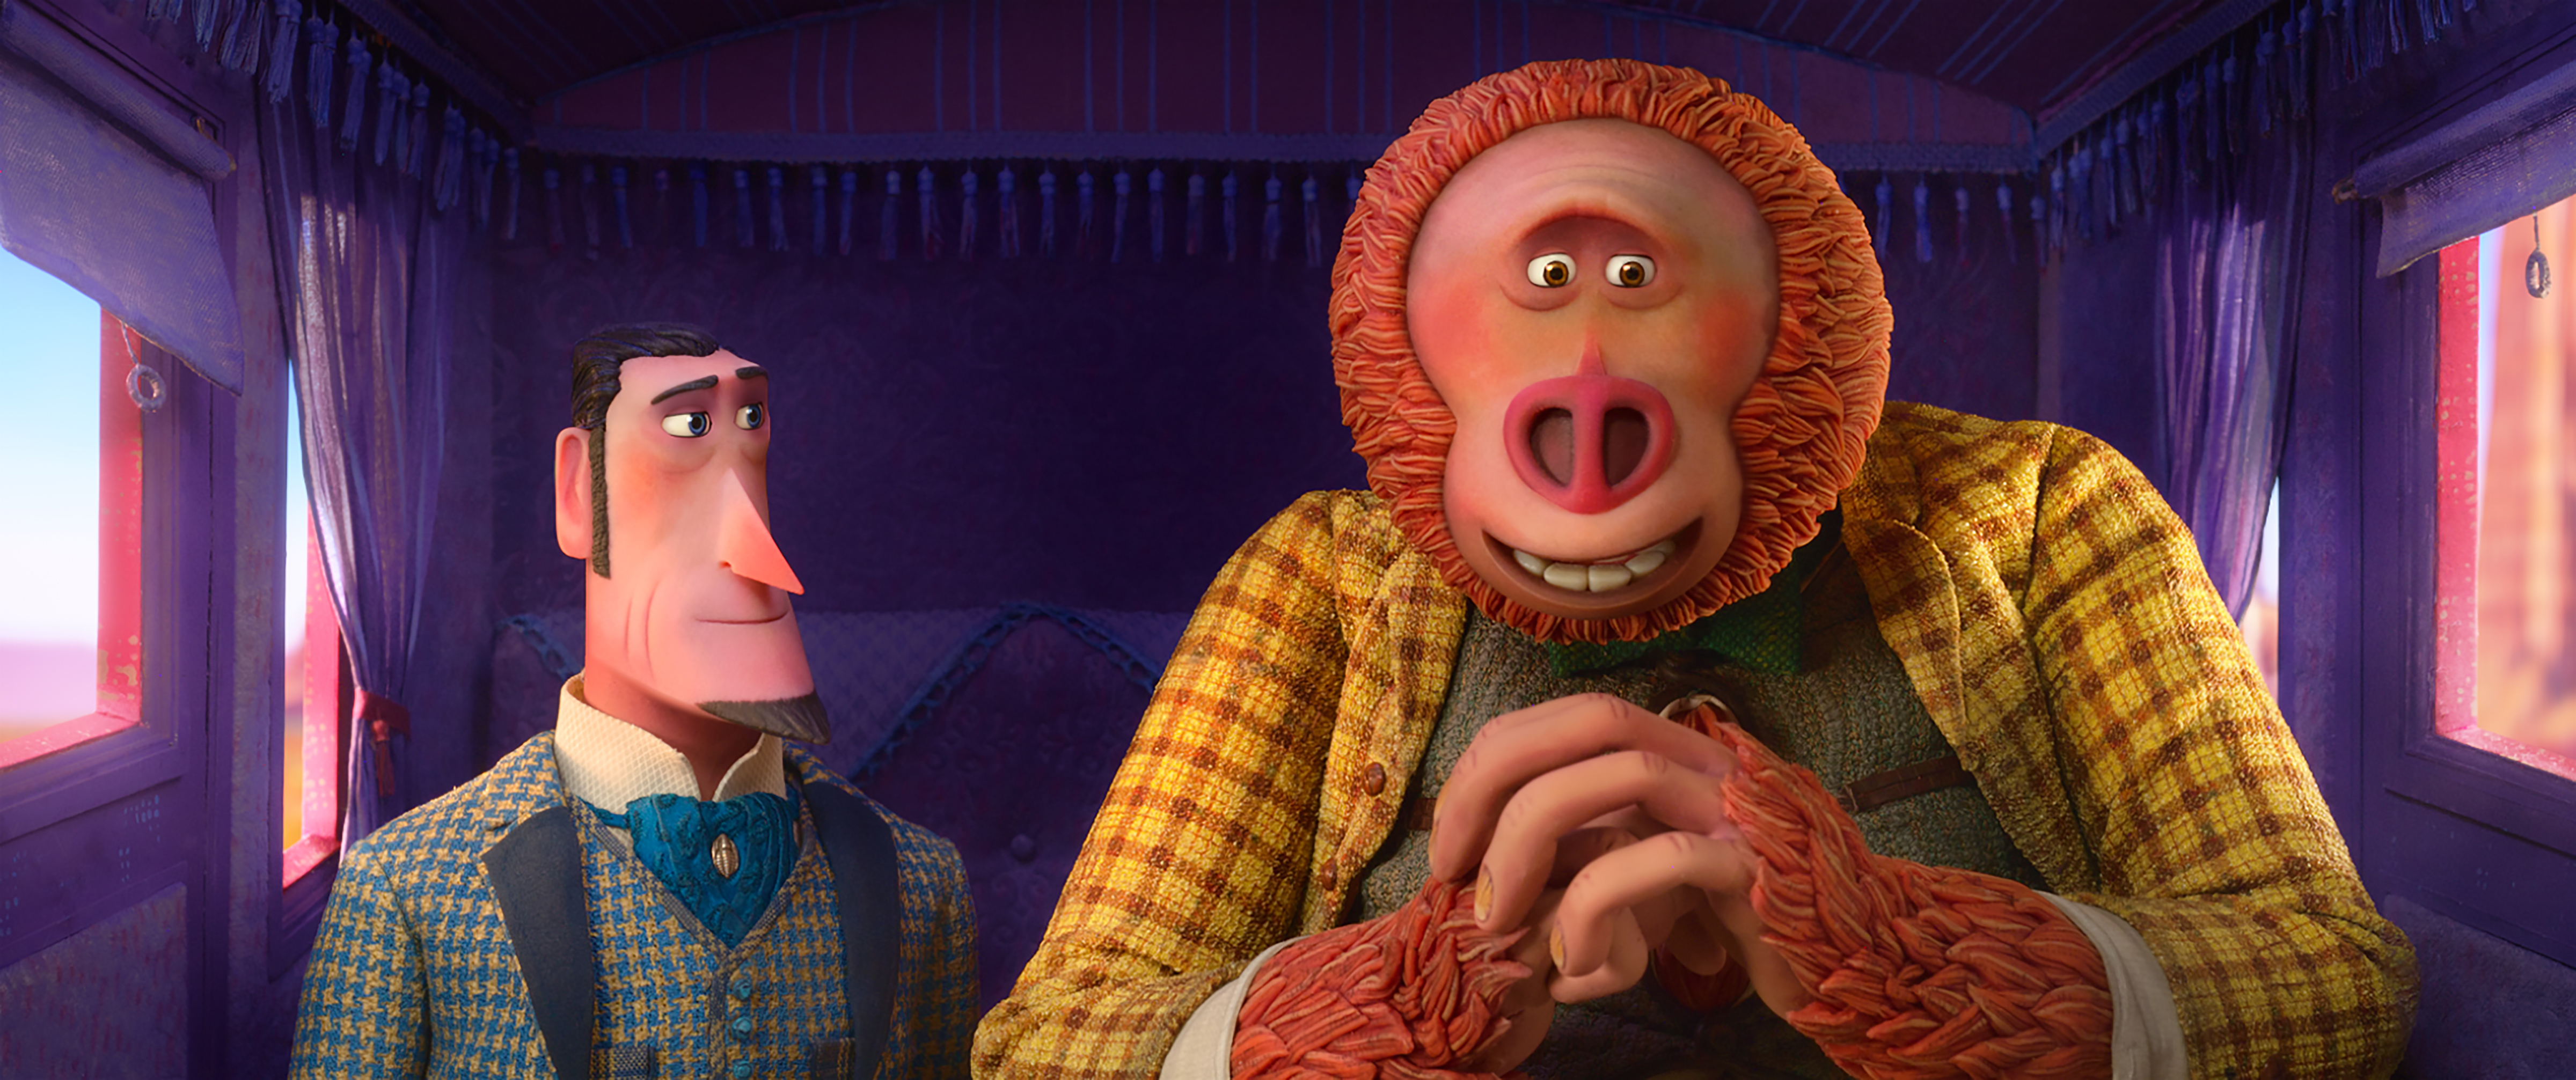 LAIKA – Set Tours of Missing Link production… Missing Link Carrage